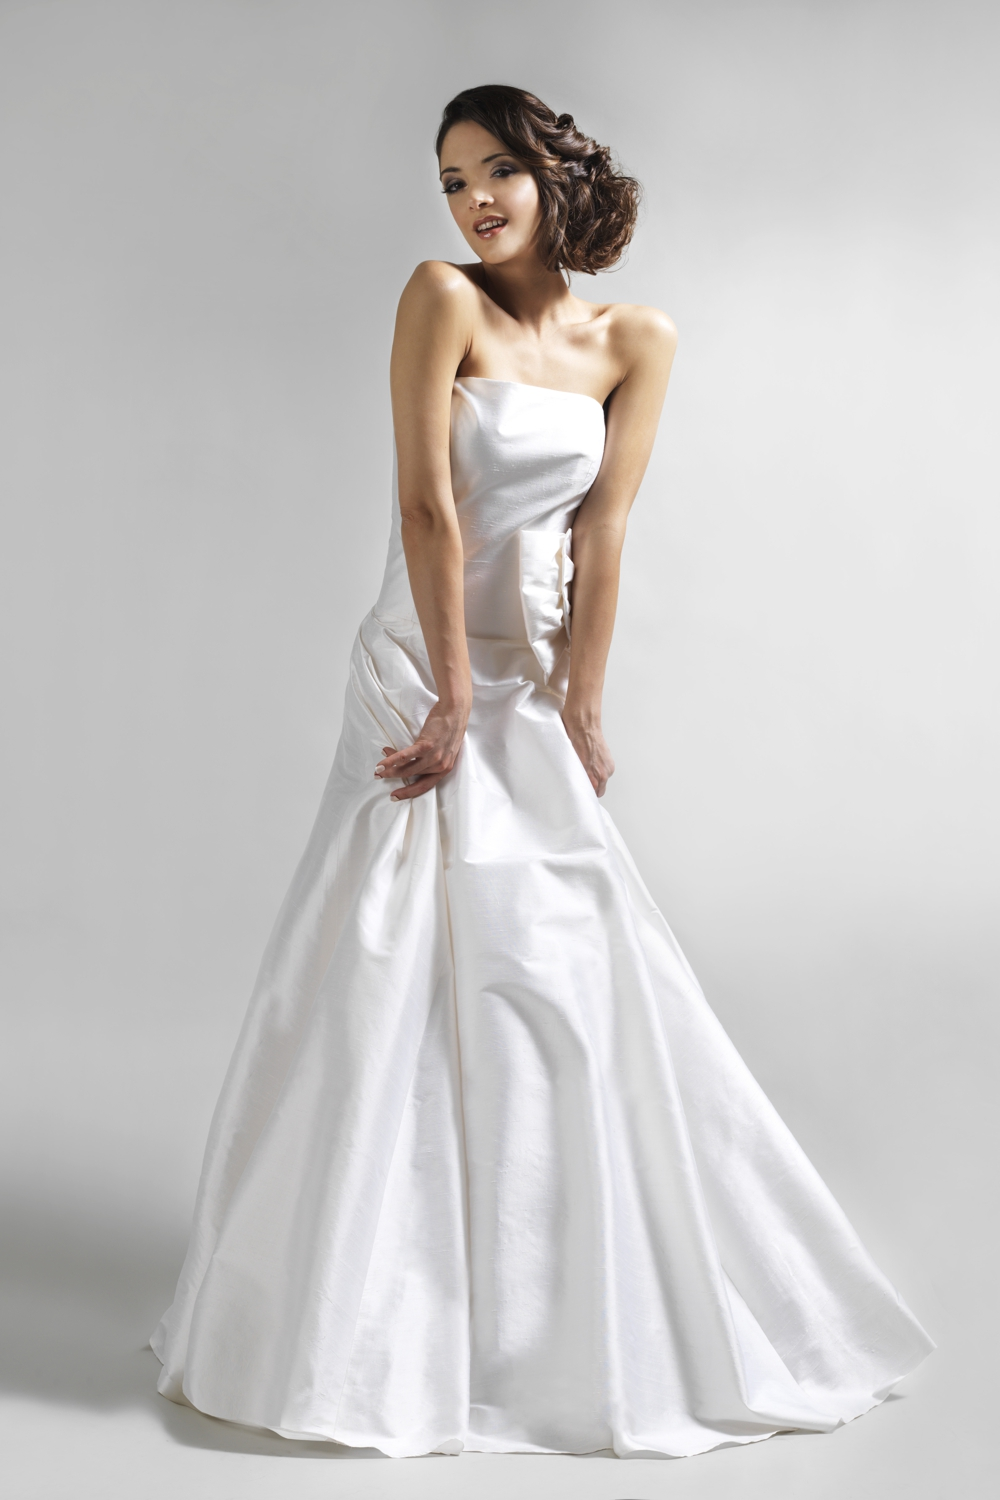 Silk wedding dress with bow